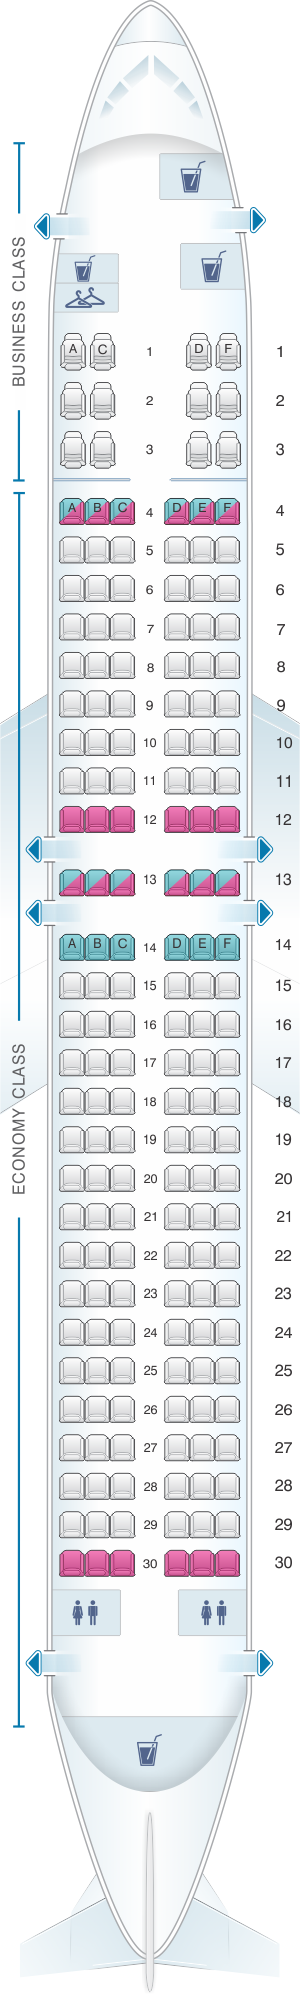 Seat map for MIAT Mongolian Airlines Boeing B737 800W